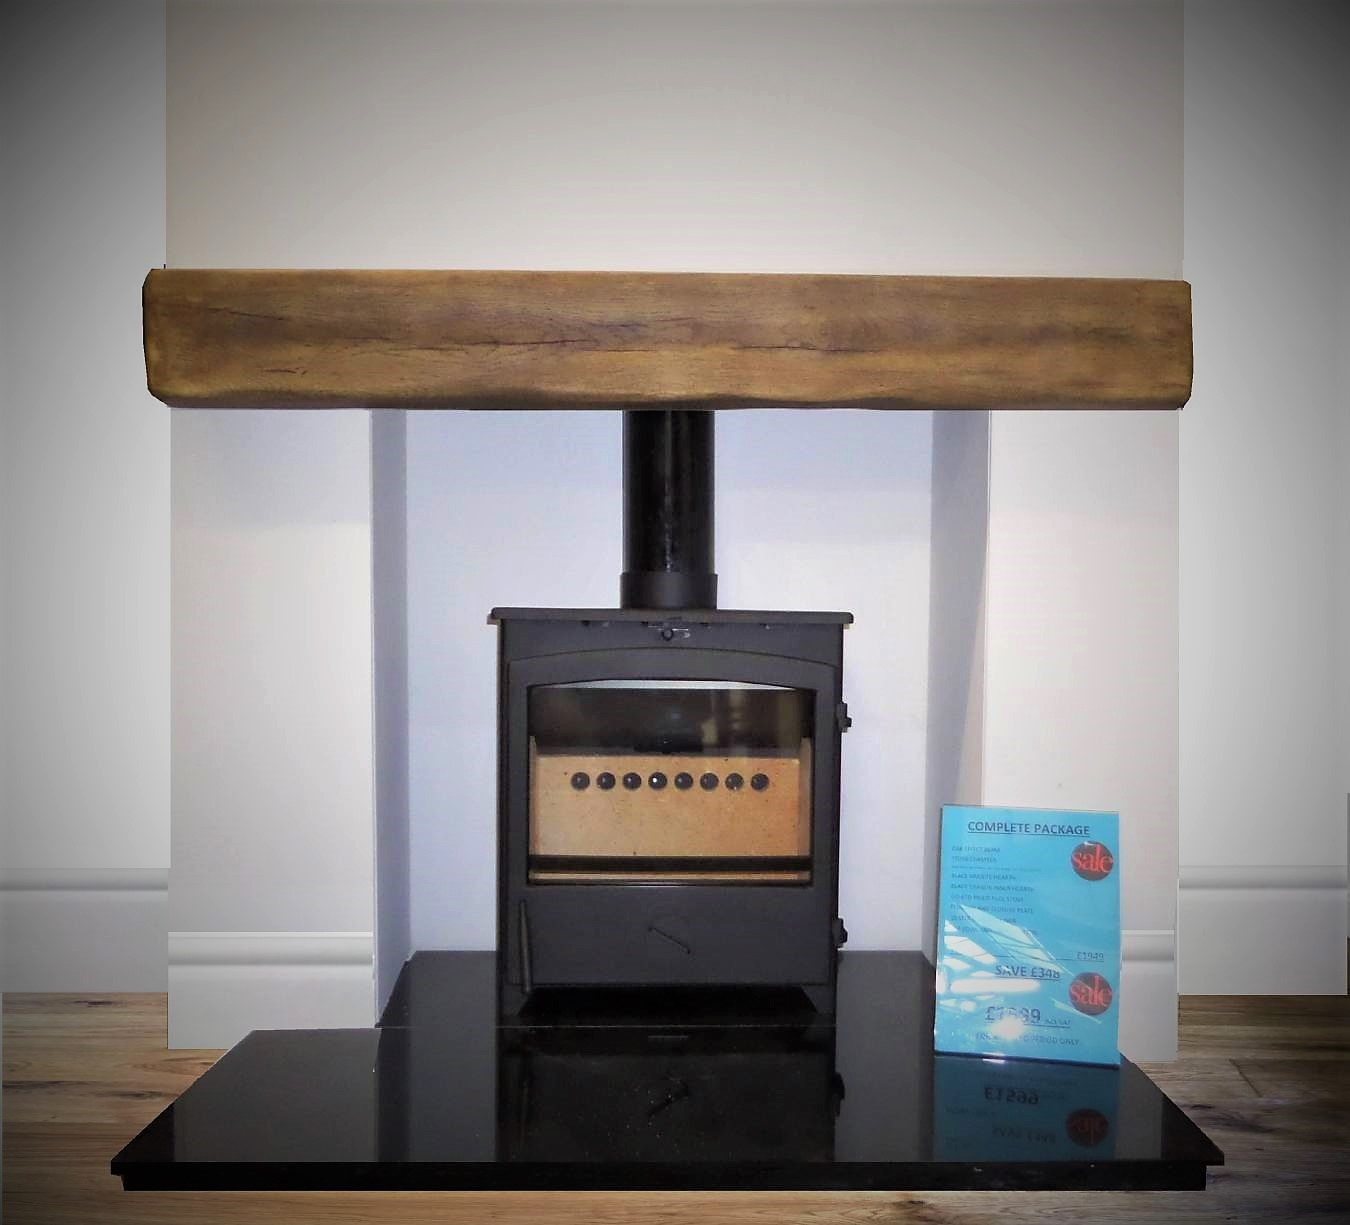 Buy Online Go Eco Multi Fuel Stove Complete Fit Stove Package